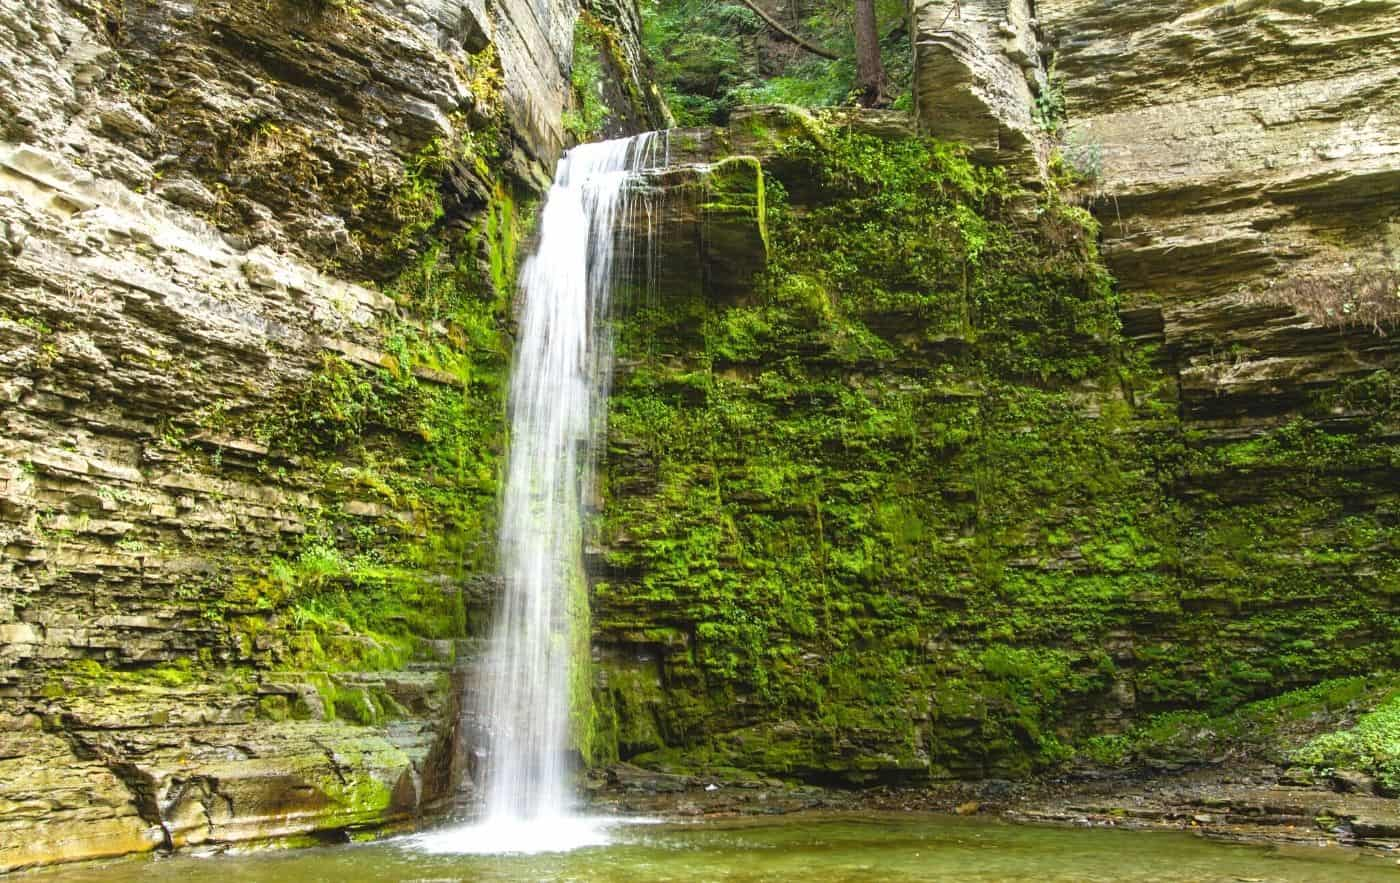 Eagle Cliff Falls, one of the best waterfalls in New York